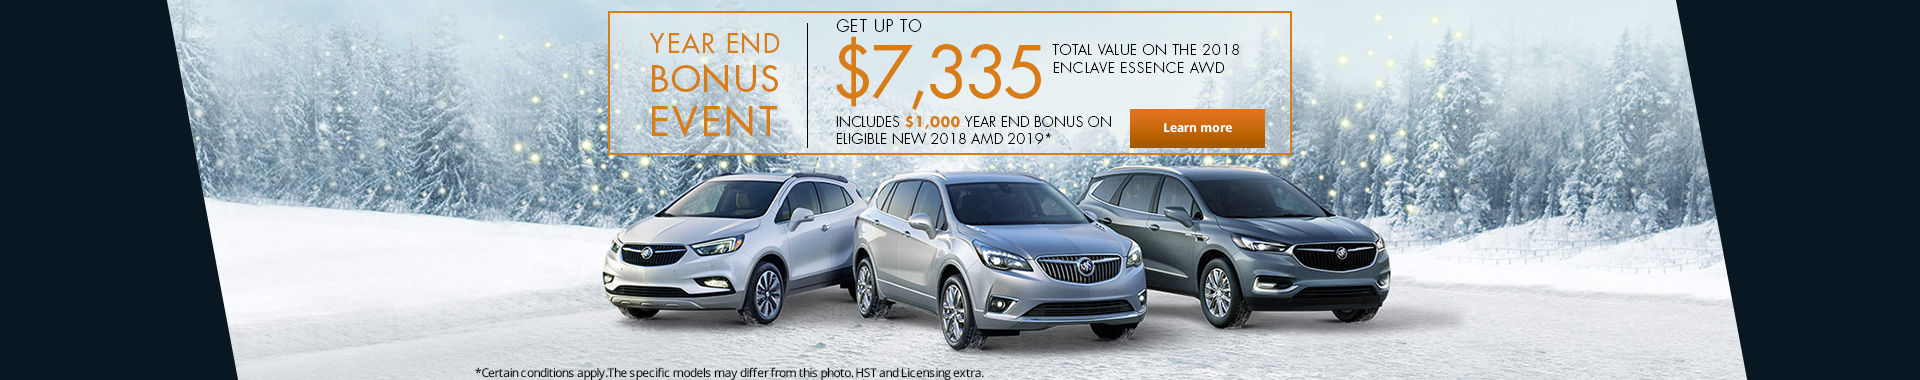 Year end bonus event - Buick